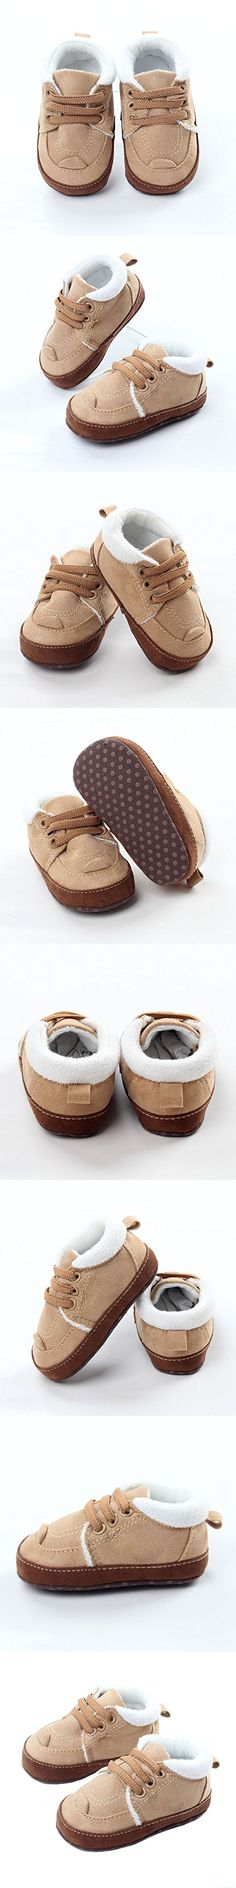 Baby Boy Fur Lined Loafers Flats Shoes Anti-slip Walkers Soft Sole Walking Shoes Khaki Size S